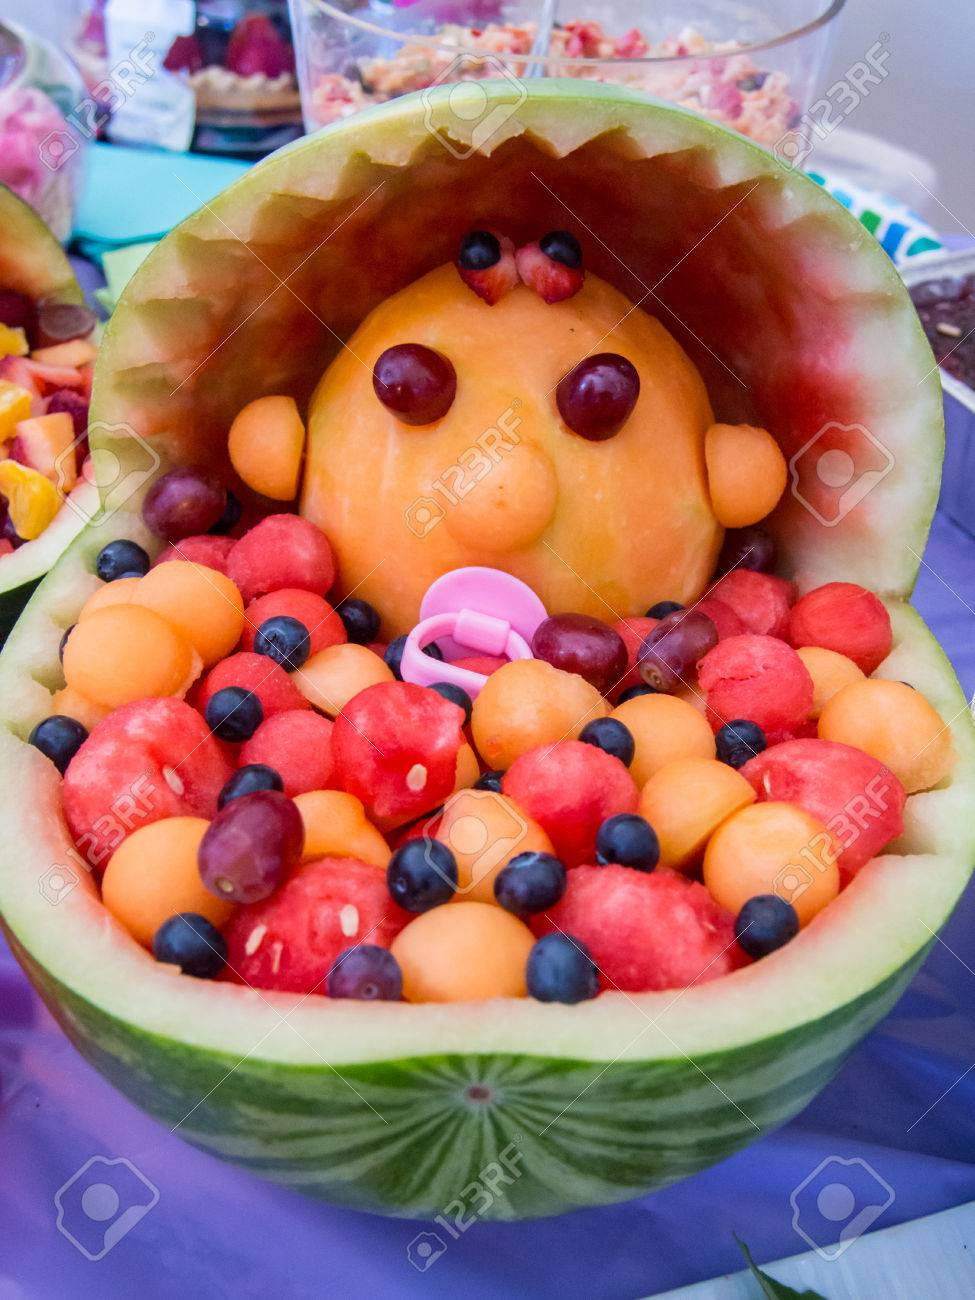 Colorful Baby Shower Fruit Sculpture Made Of Various Melons. Stock Photo    22407604